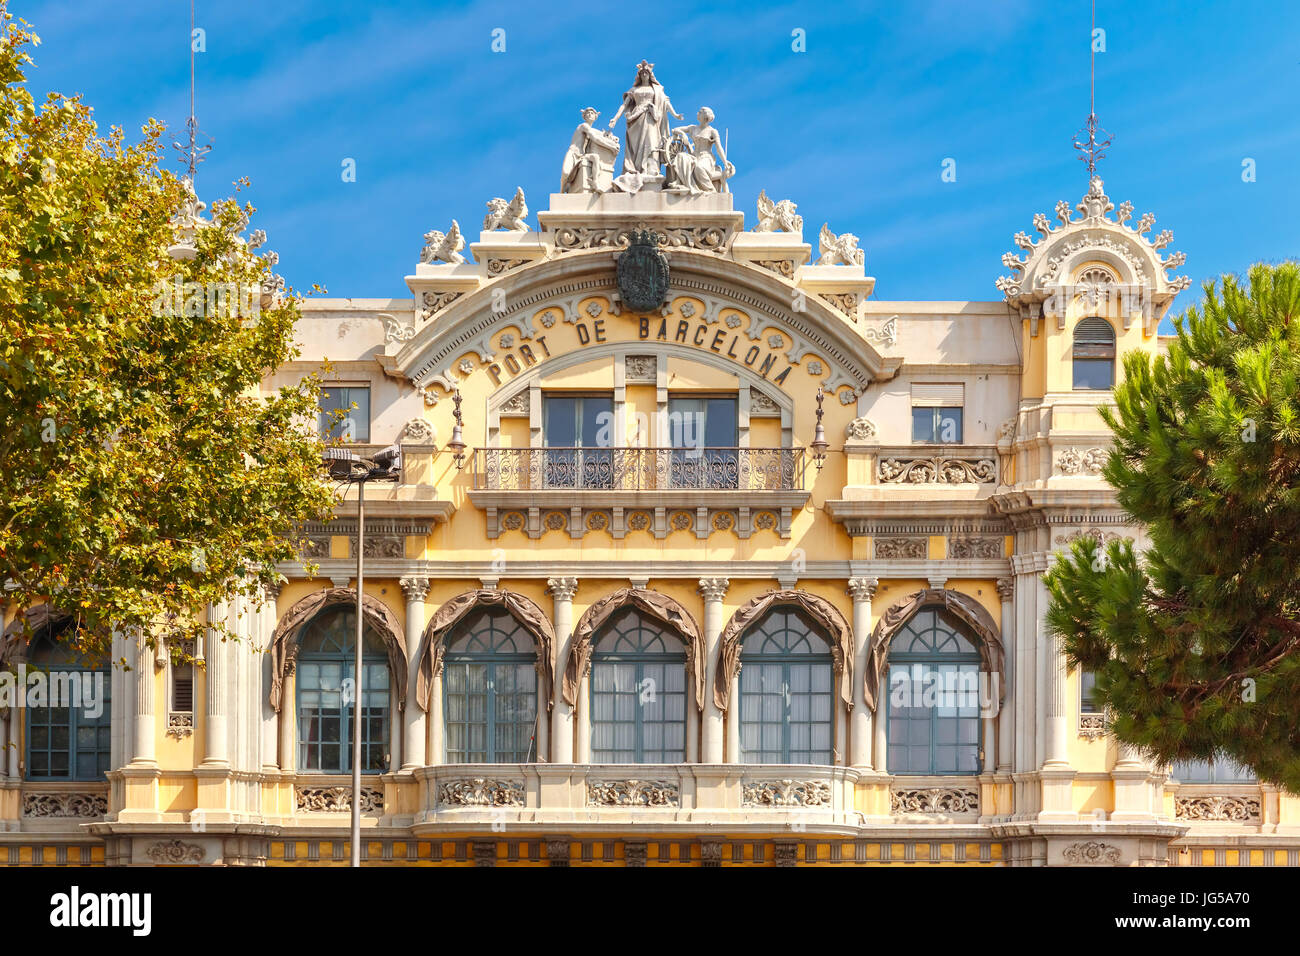 Port Authority Barcelona, Spain - Stock Image